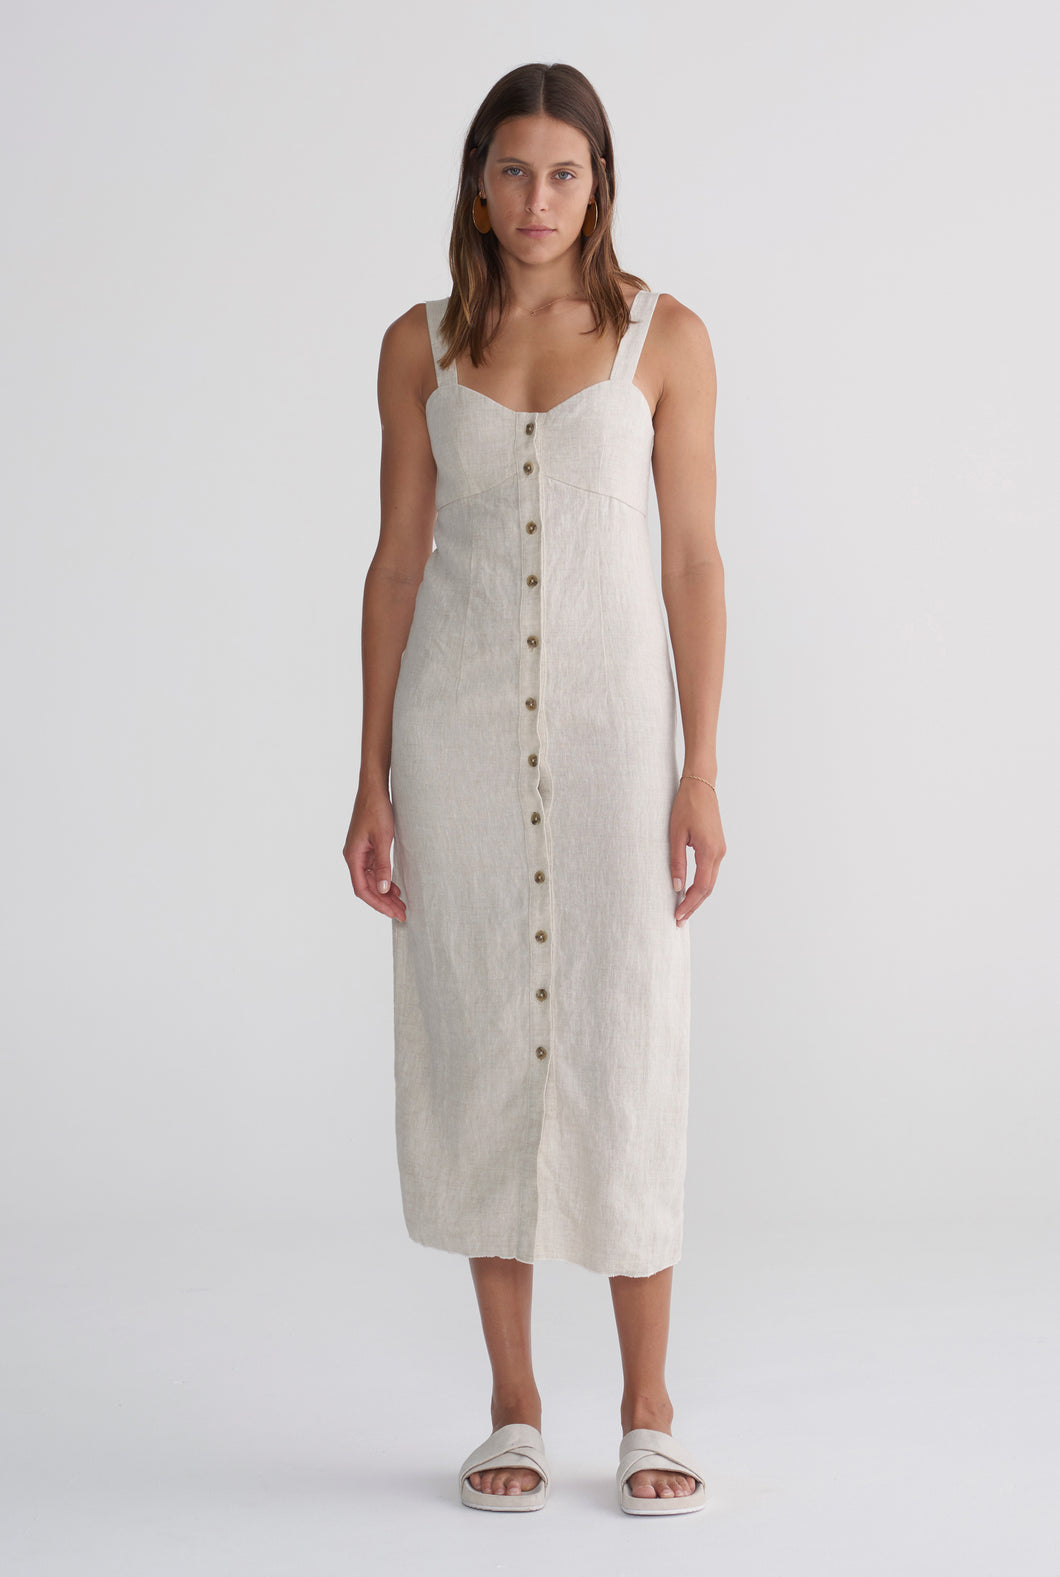 Button Front Dress - Sand